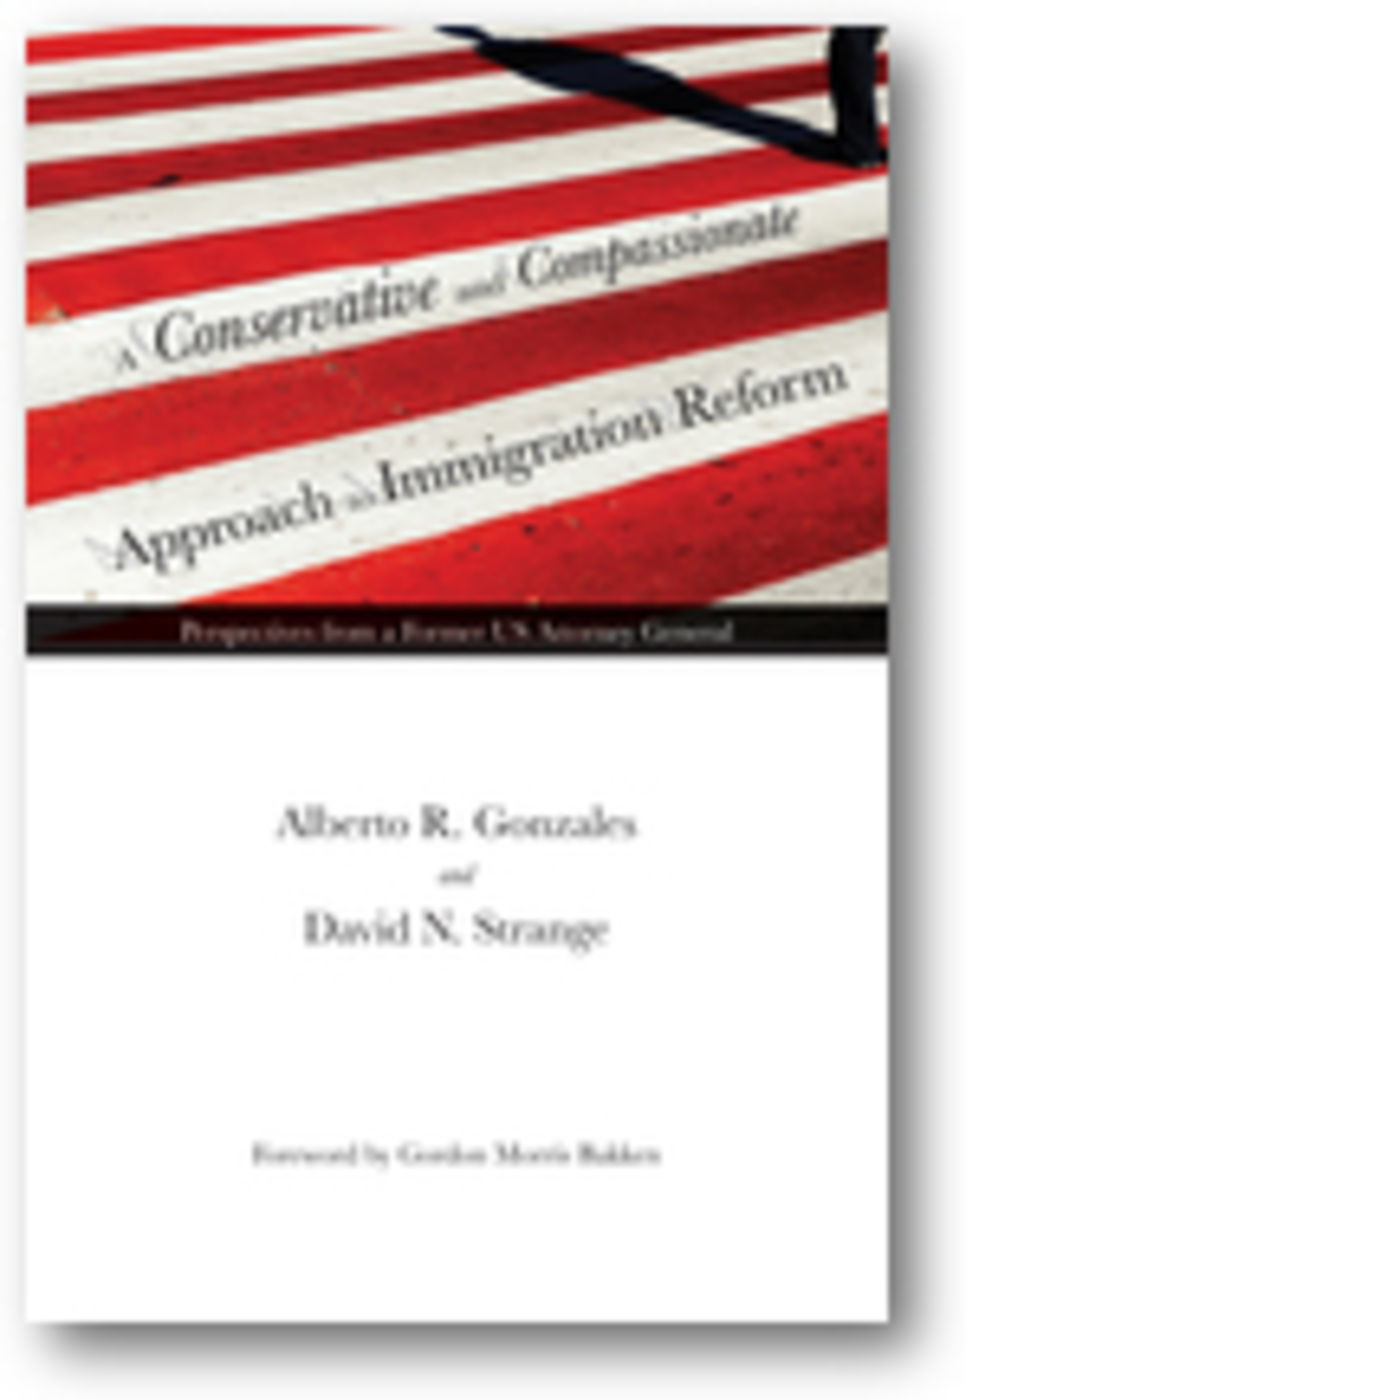 David Strange - A Conservative and Compassionate Approach to Immigration Reform